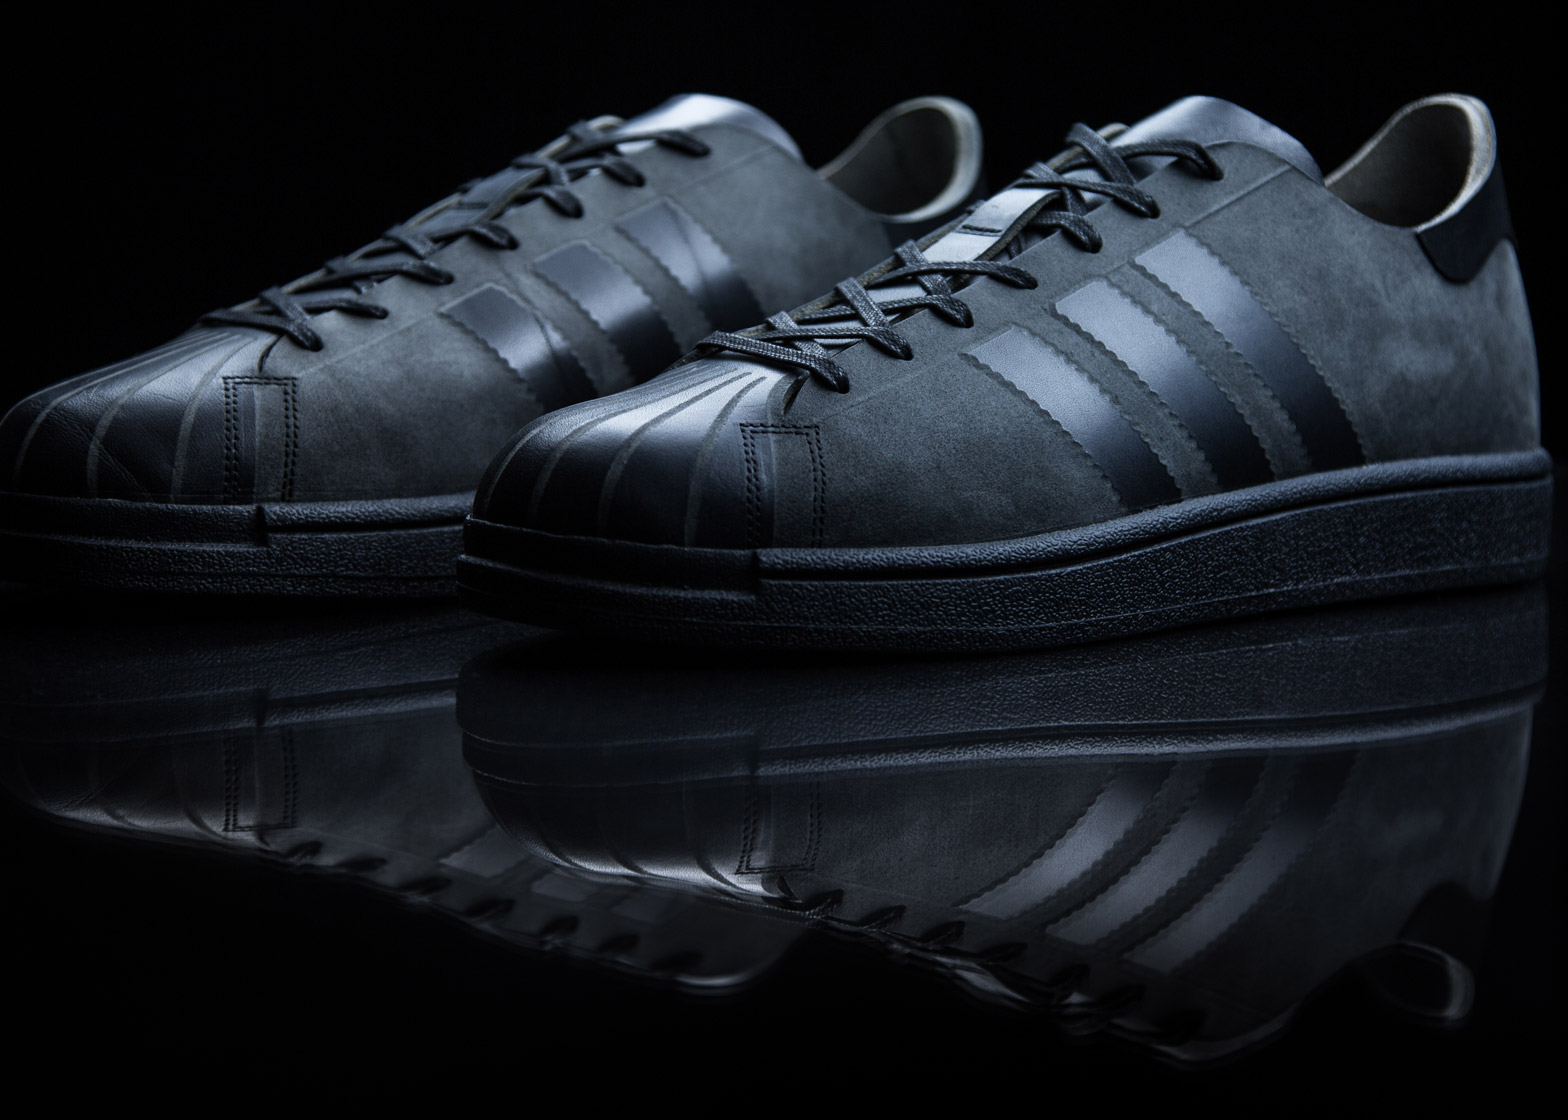 Adidas Superstar trainer by Alexander Taylor